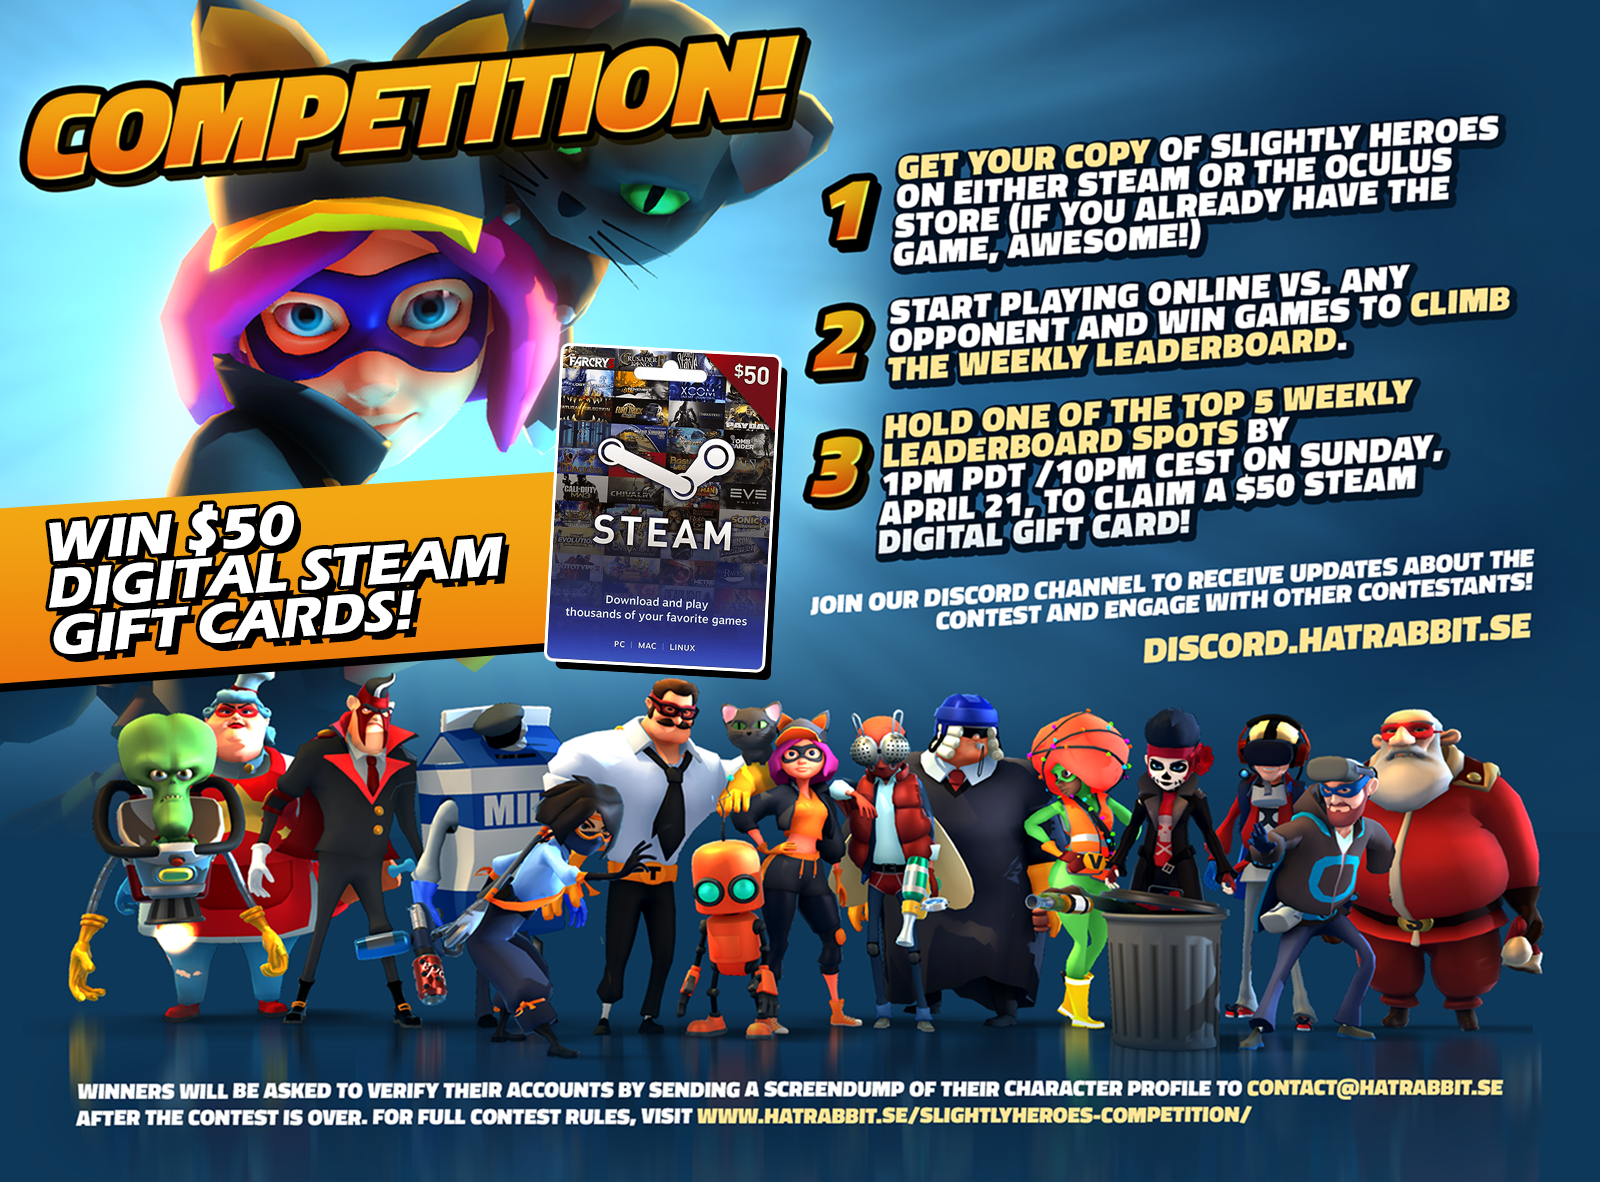 Slightly Heroes VR :: Weekly Contest: Win $50 Steam Gift Cards!